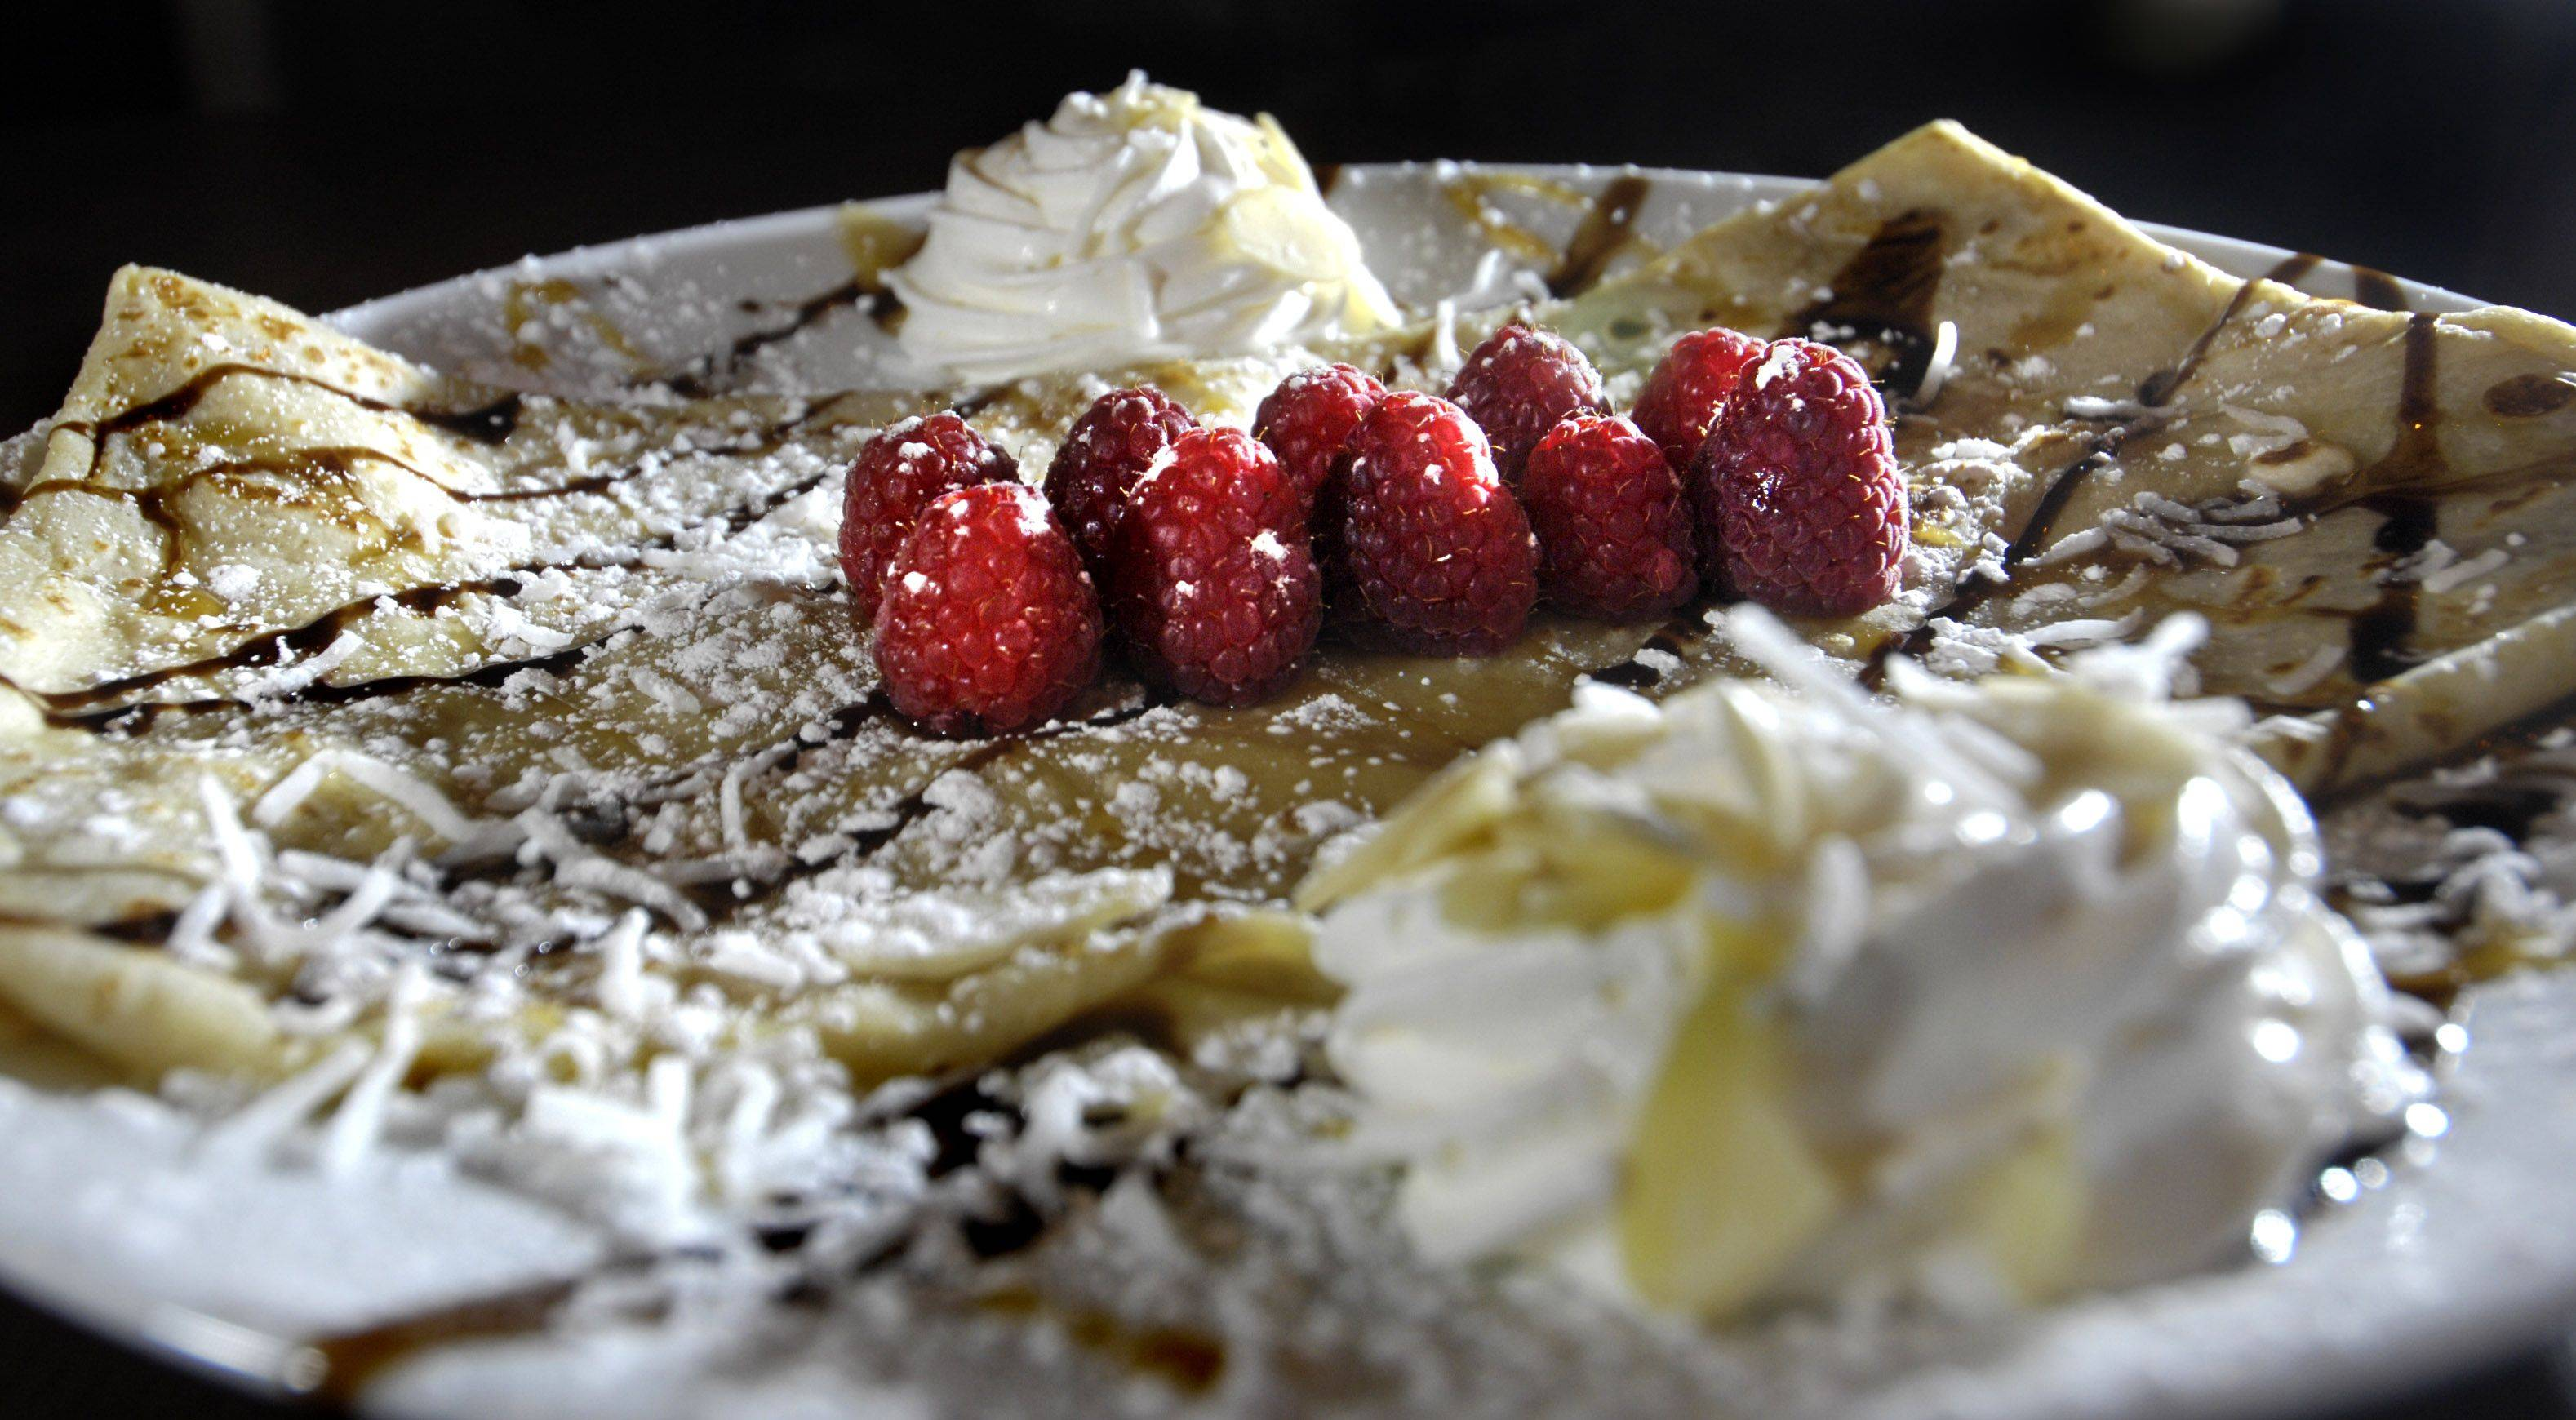 Follow a savory dinner with sweet crepes at The Creperie Normande in Algonquin.